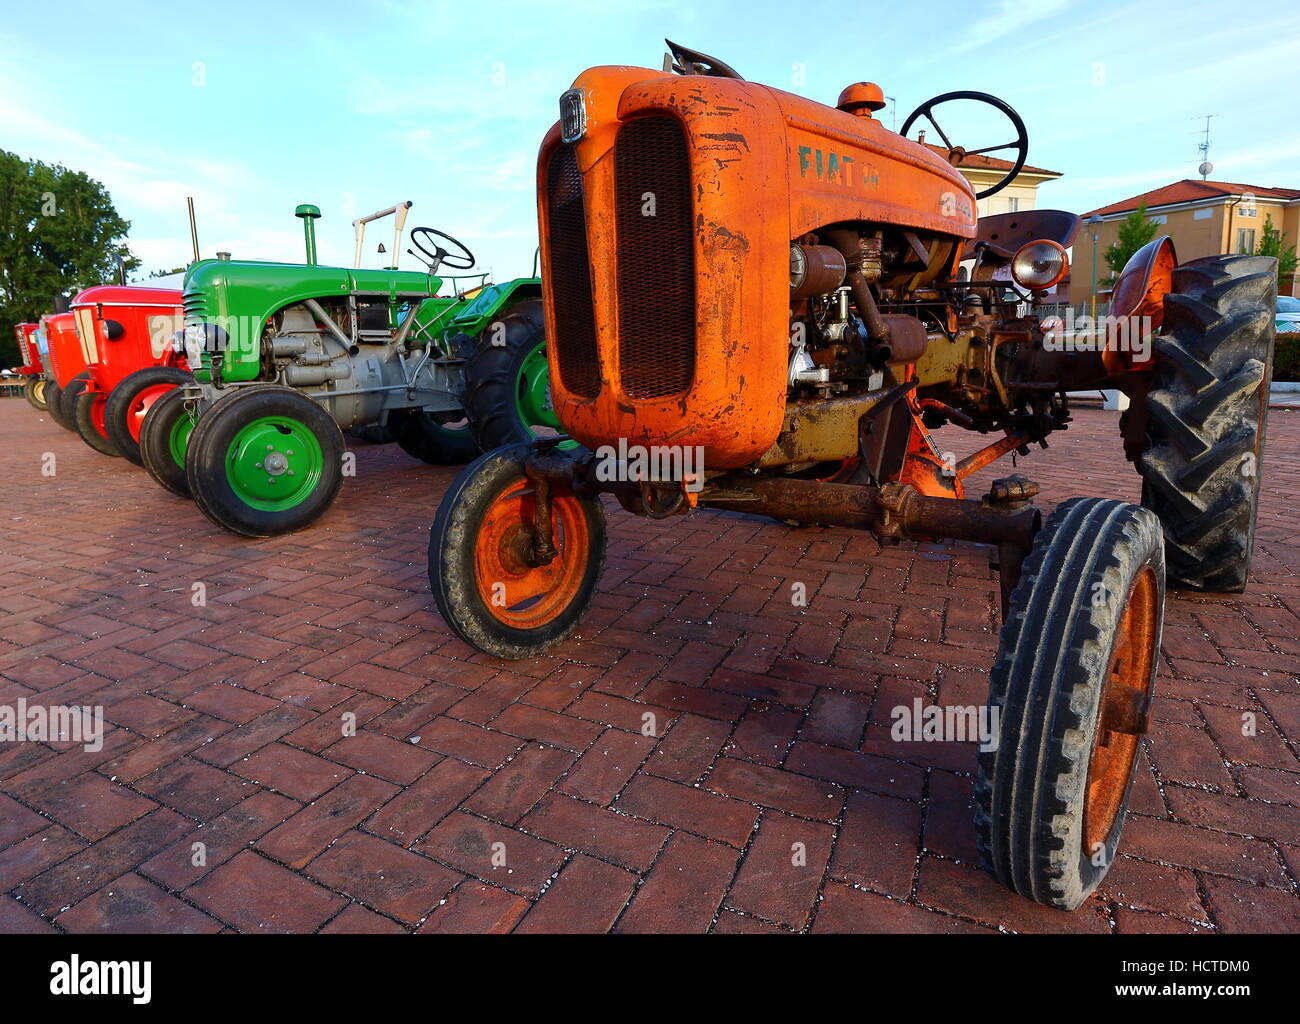 Vintage tractor show - Stock Image